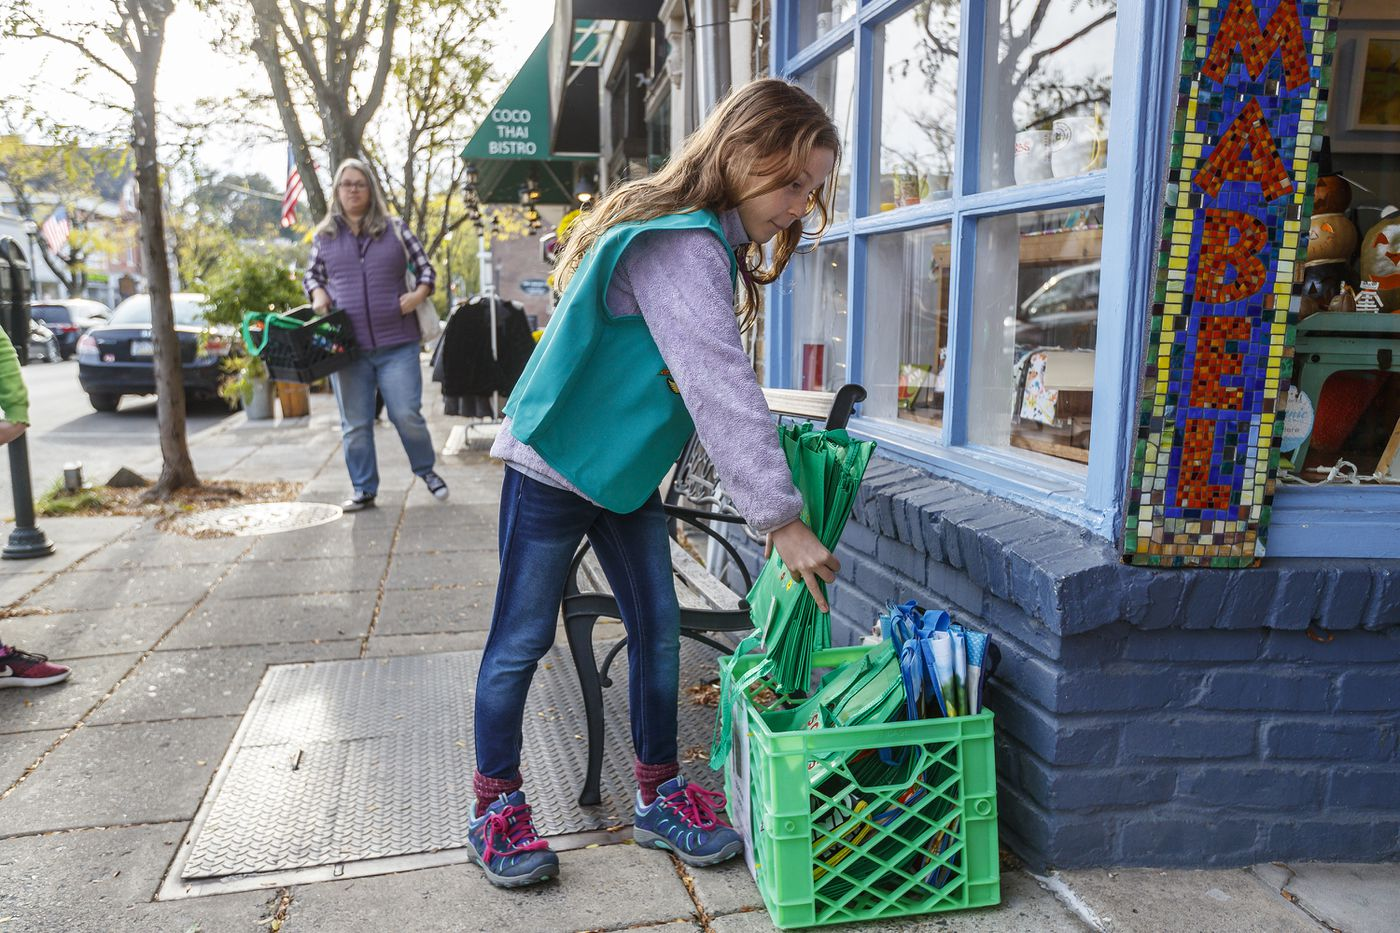 How a Main Line town became the first in Pa. to ban plastic straws